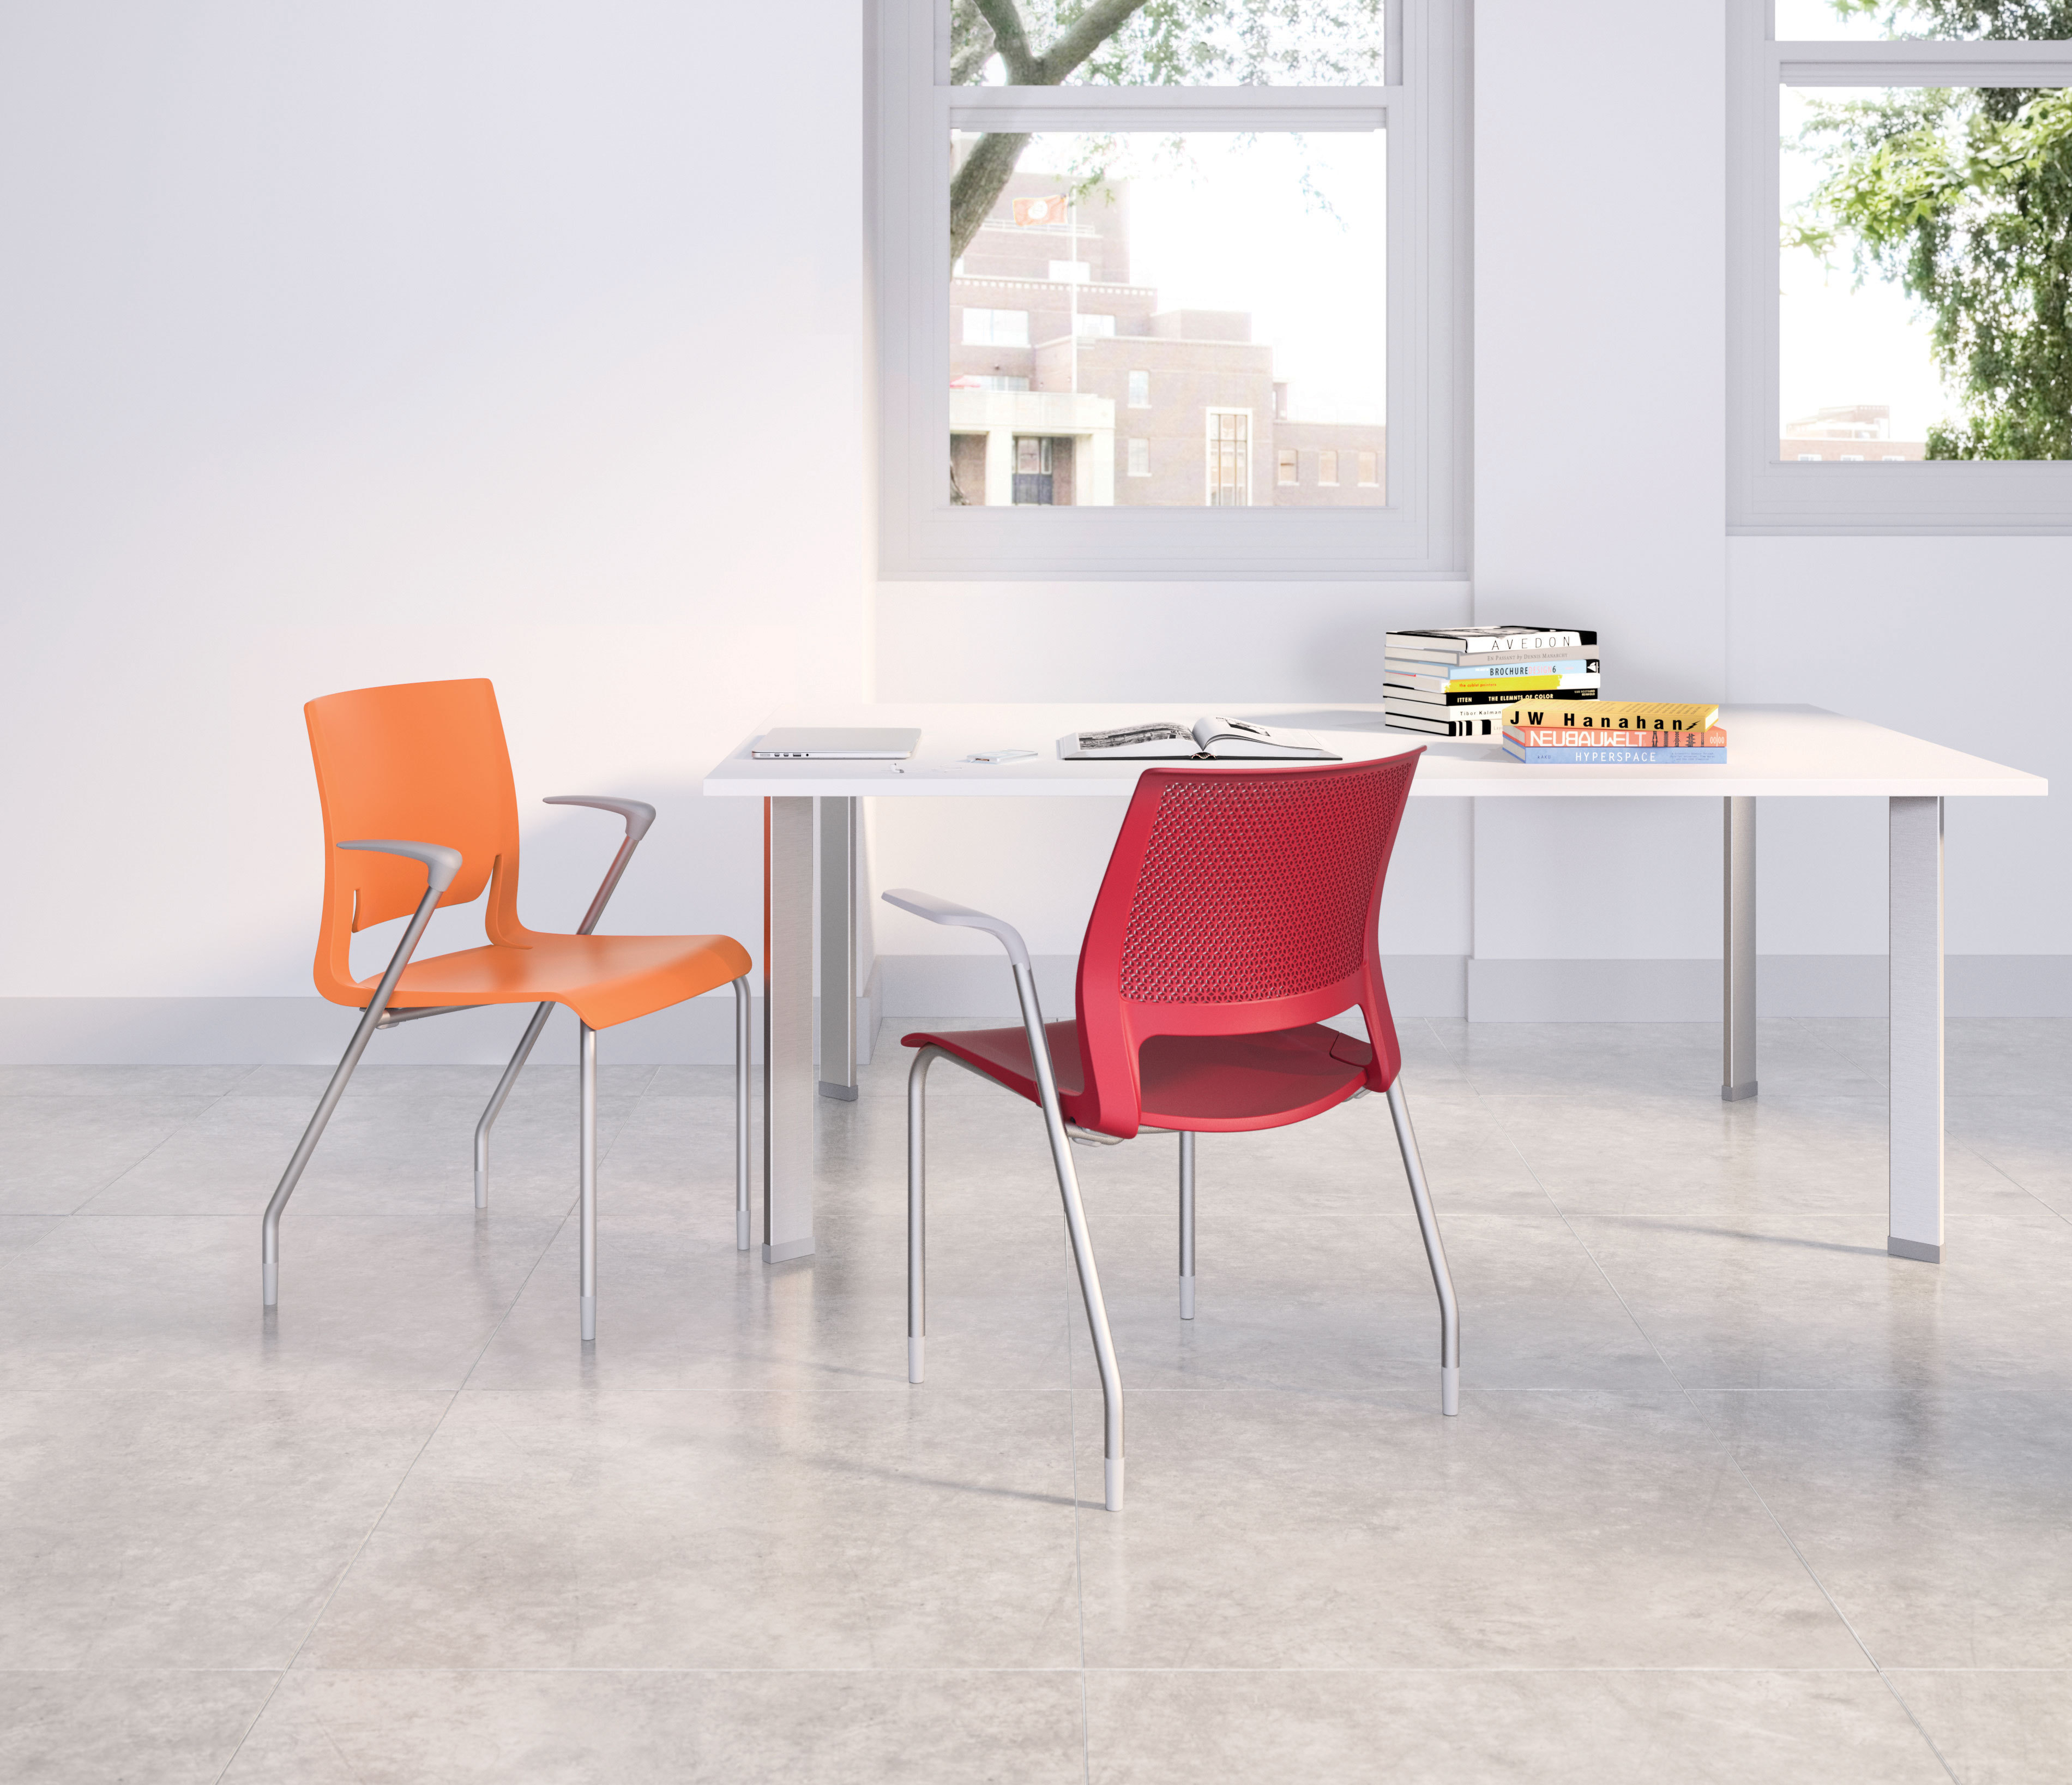 Sit It Seating Launches Two New Multipurpose Chair and Stool